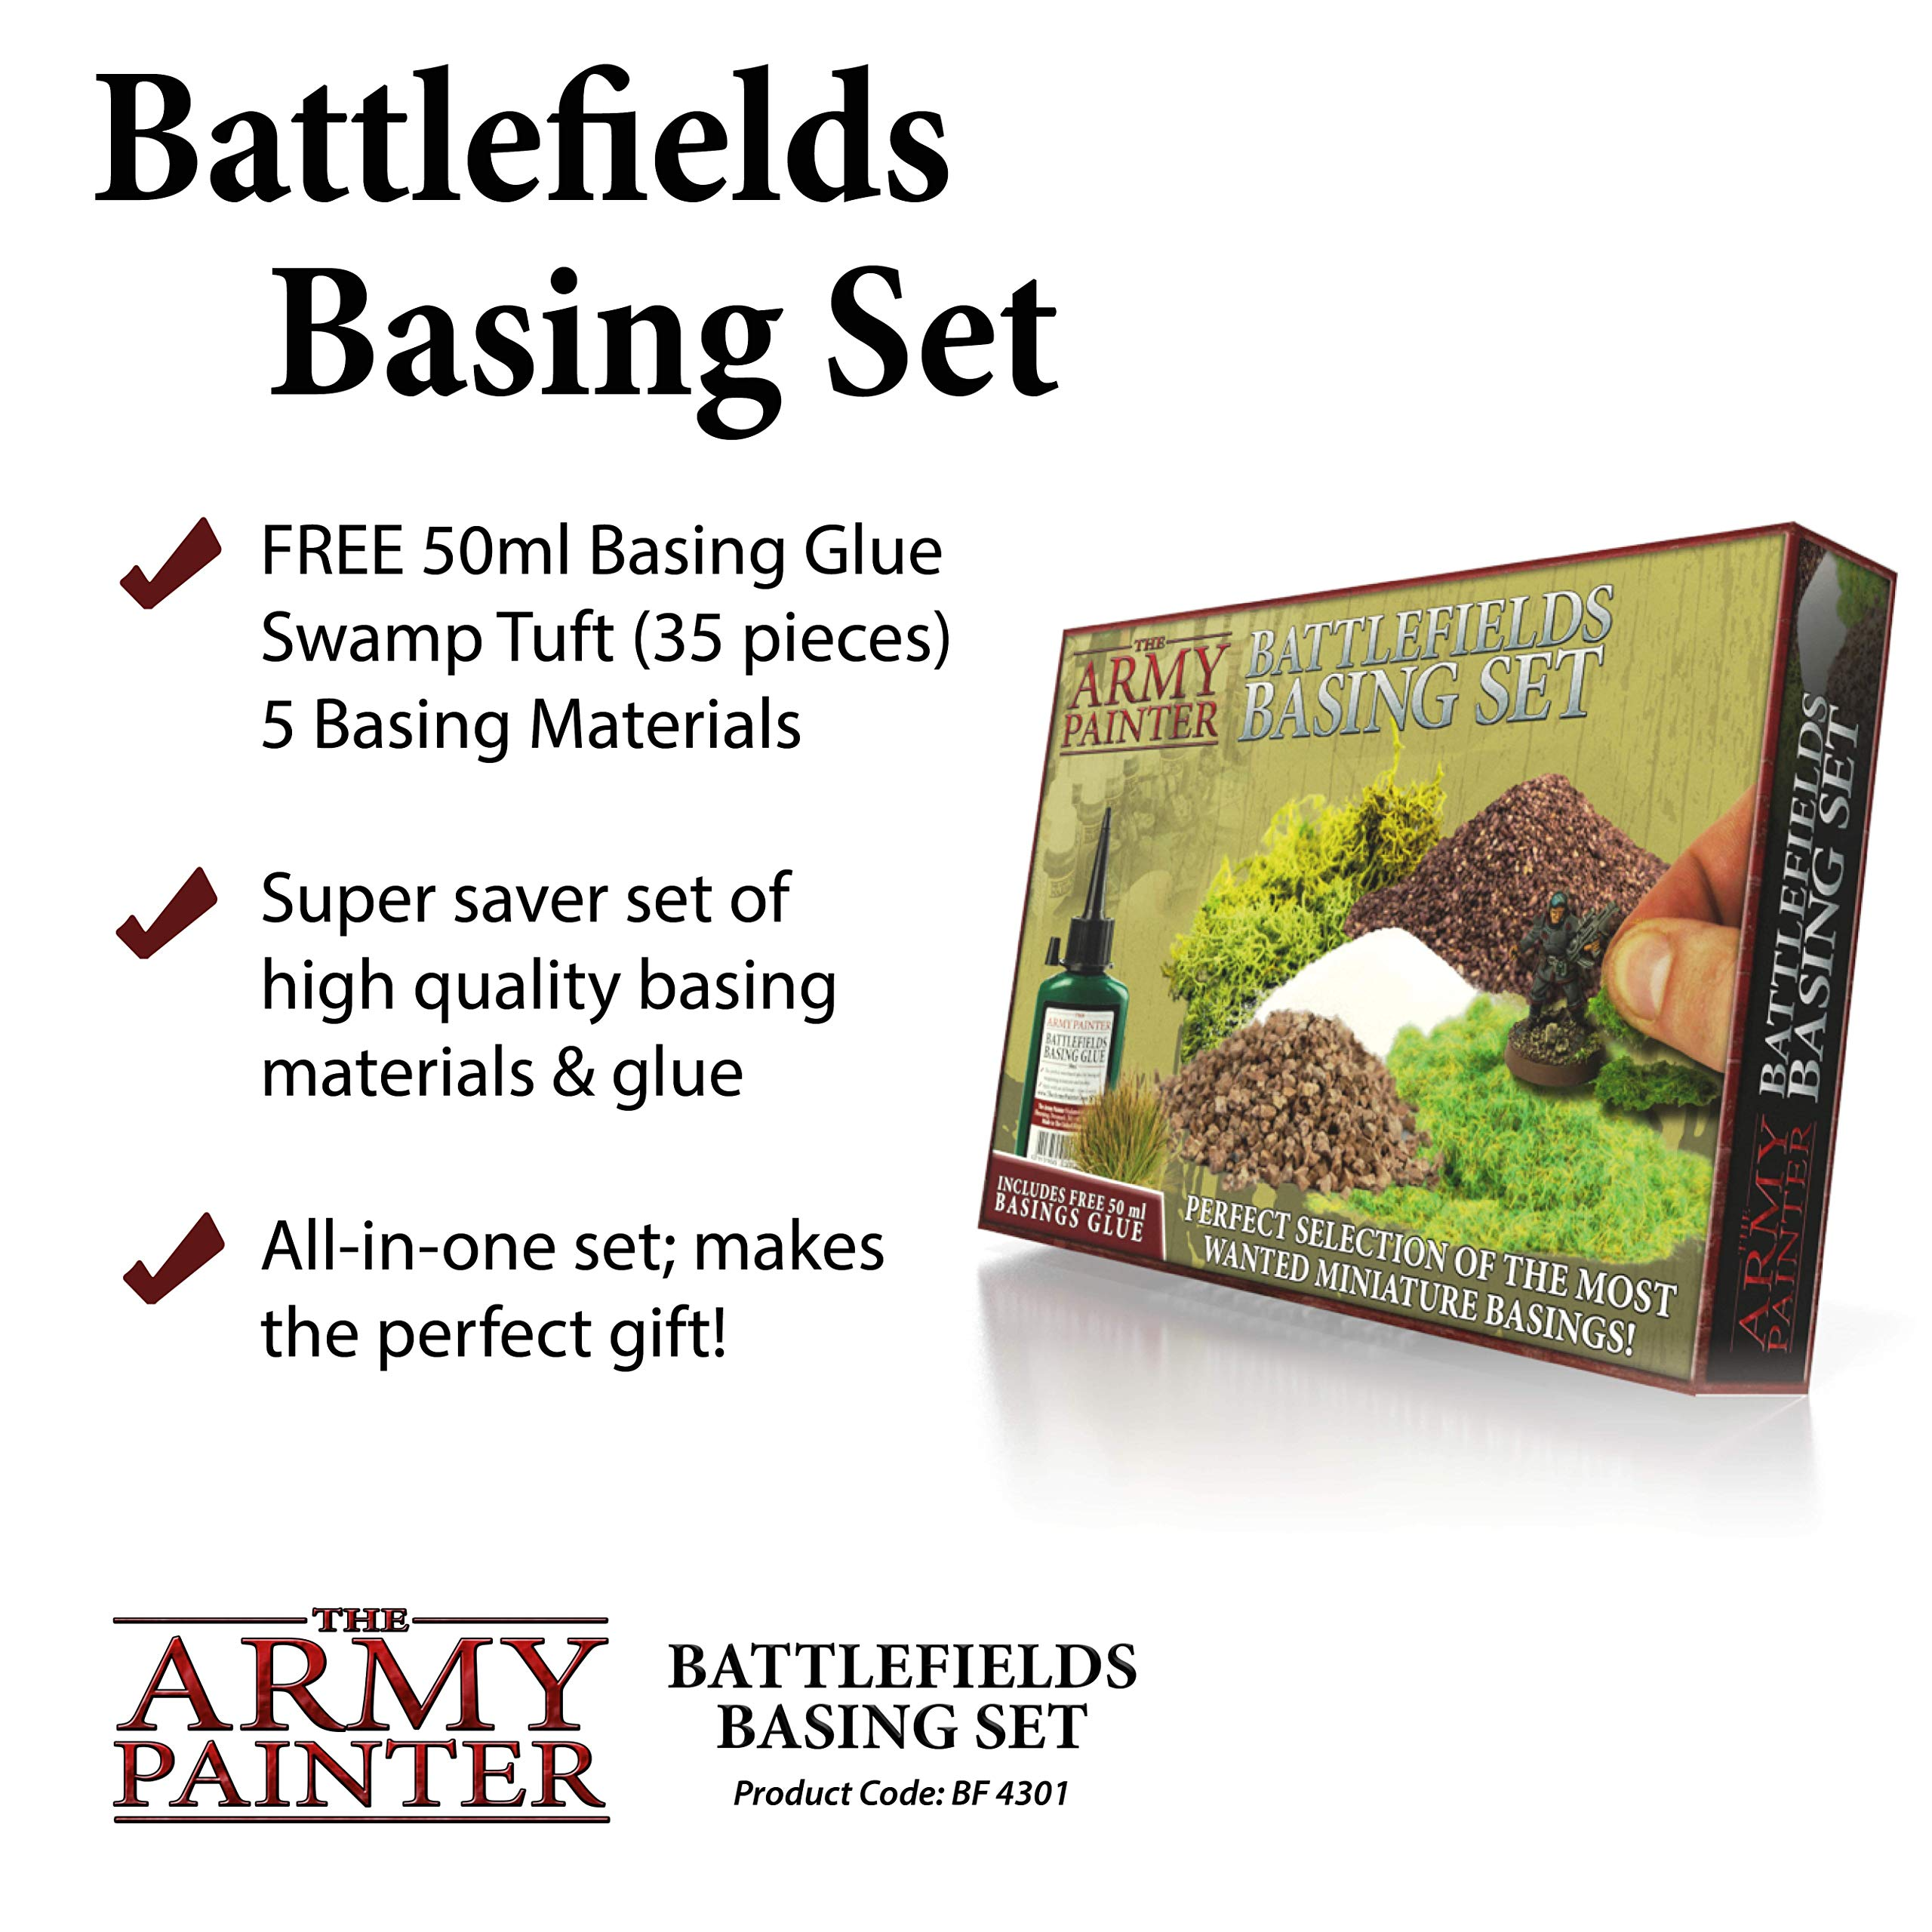 The Army Painter Battlefields Basing Set - Wargamers Terrain Model Kit for Miniature Bases and Dioramas with Landscape Rocks, Scenic Sand, Static Grass, Grass Tufts and Free Basing Glue by The Army Painter (Image #2)